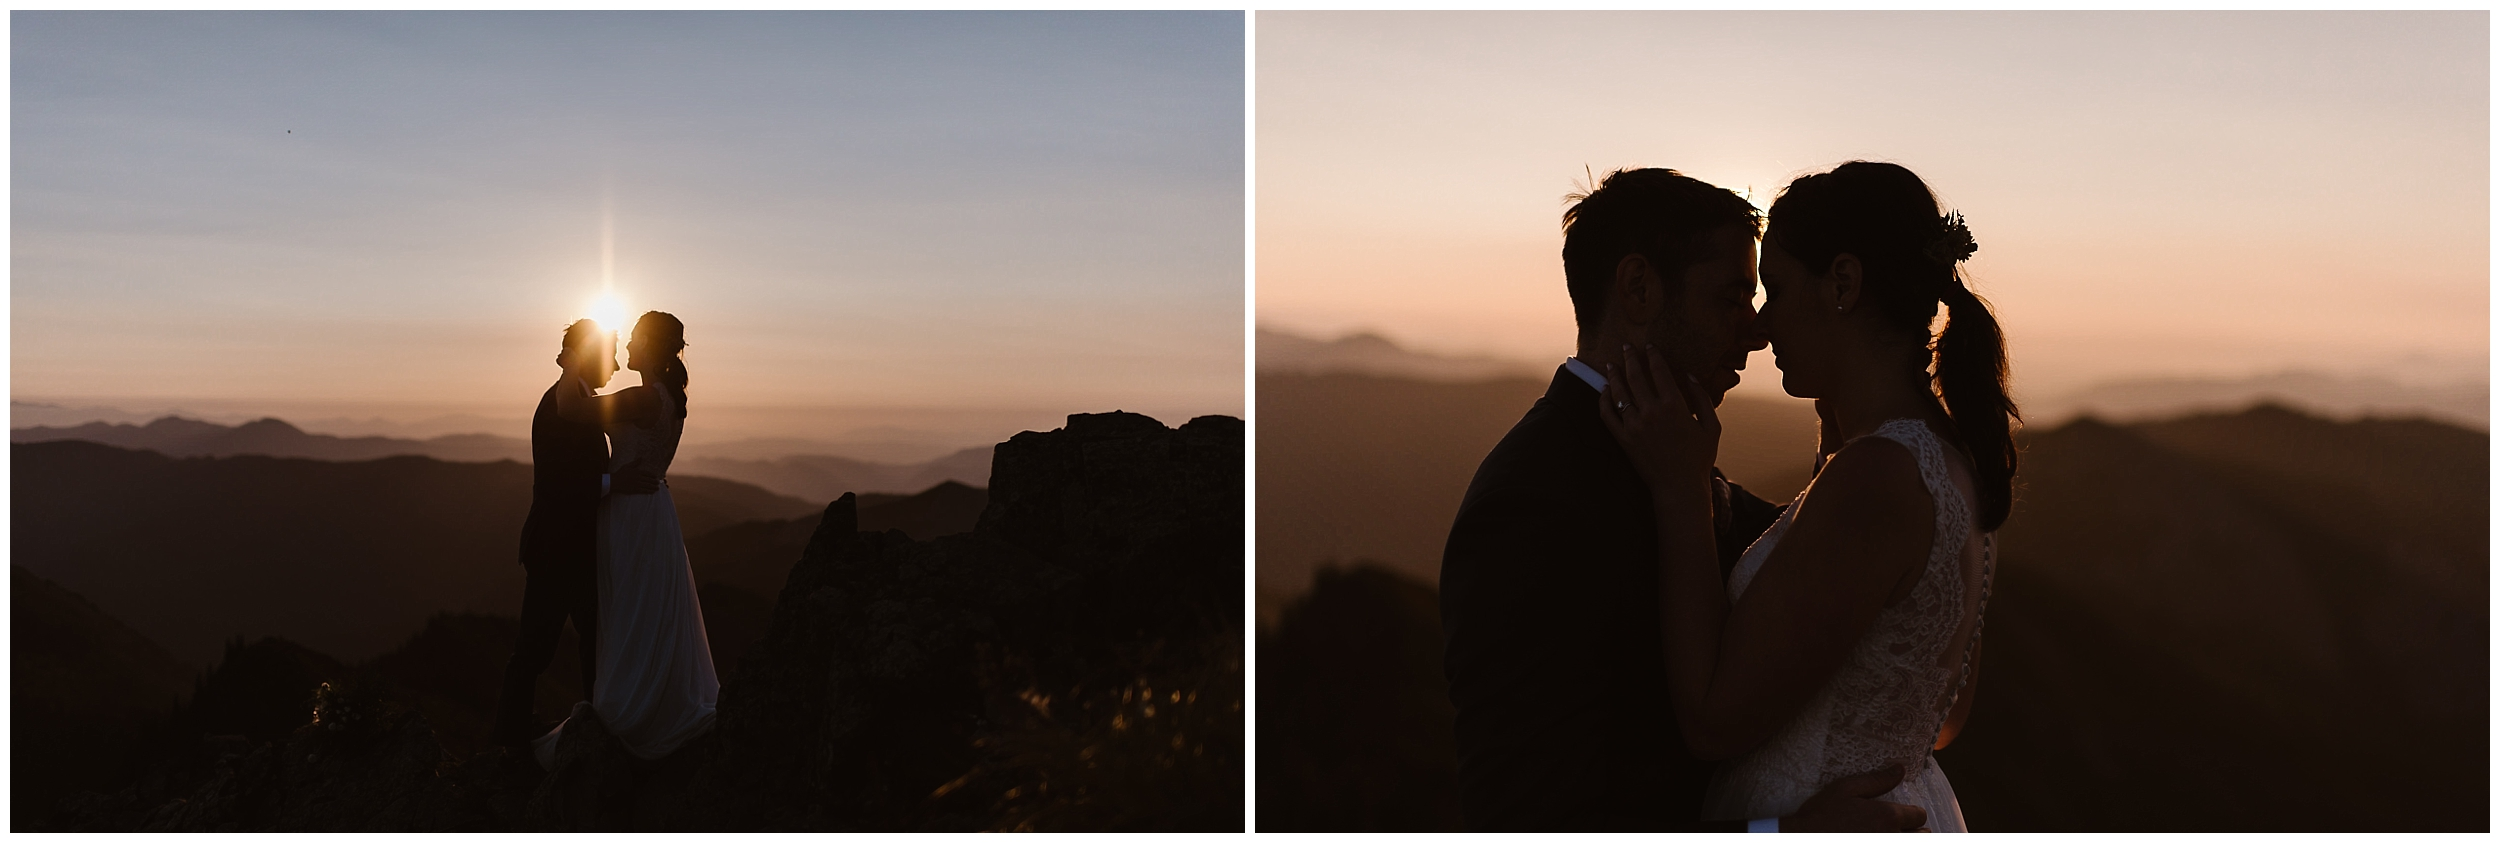 Lauryn and David are silhouetted by the sun in these sunrise elopement photos captured by Adventure Instead. The two lean in close during their North Cascades Wedding.